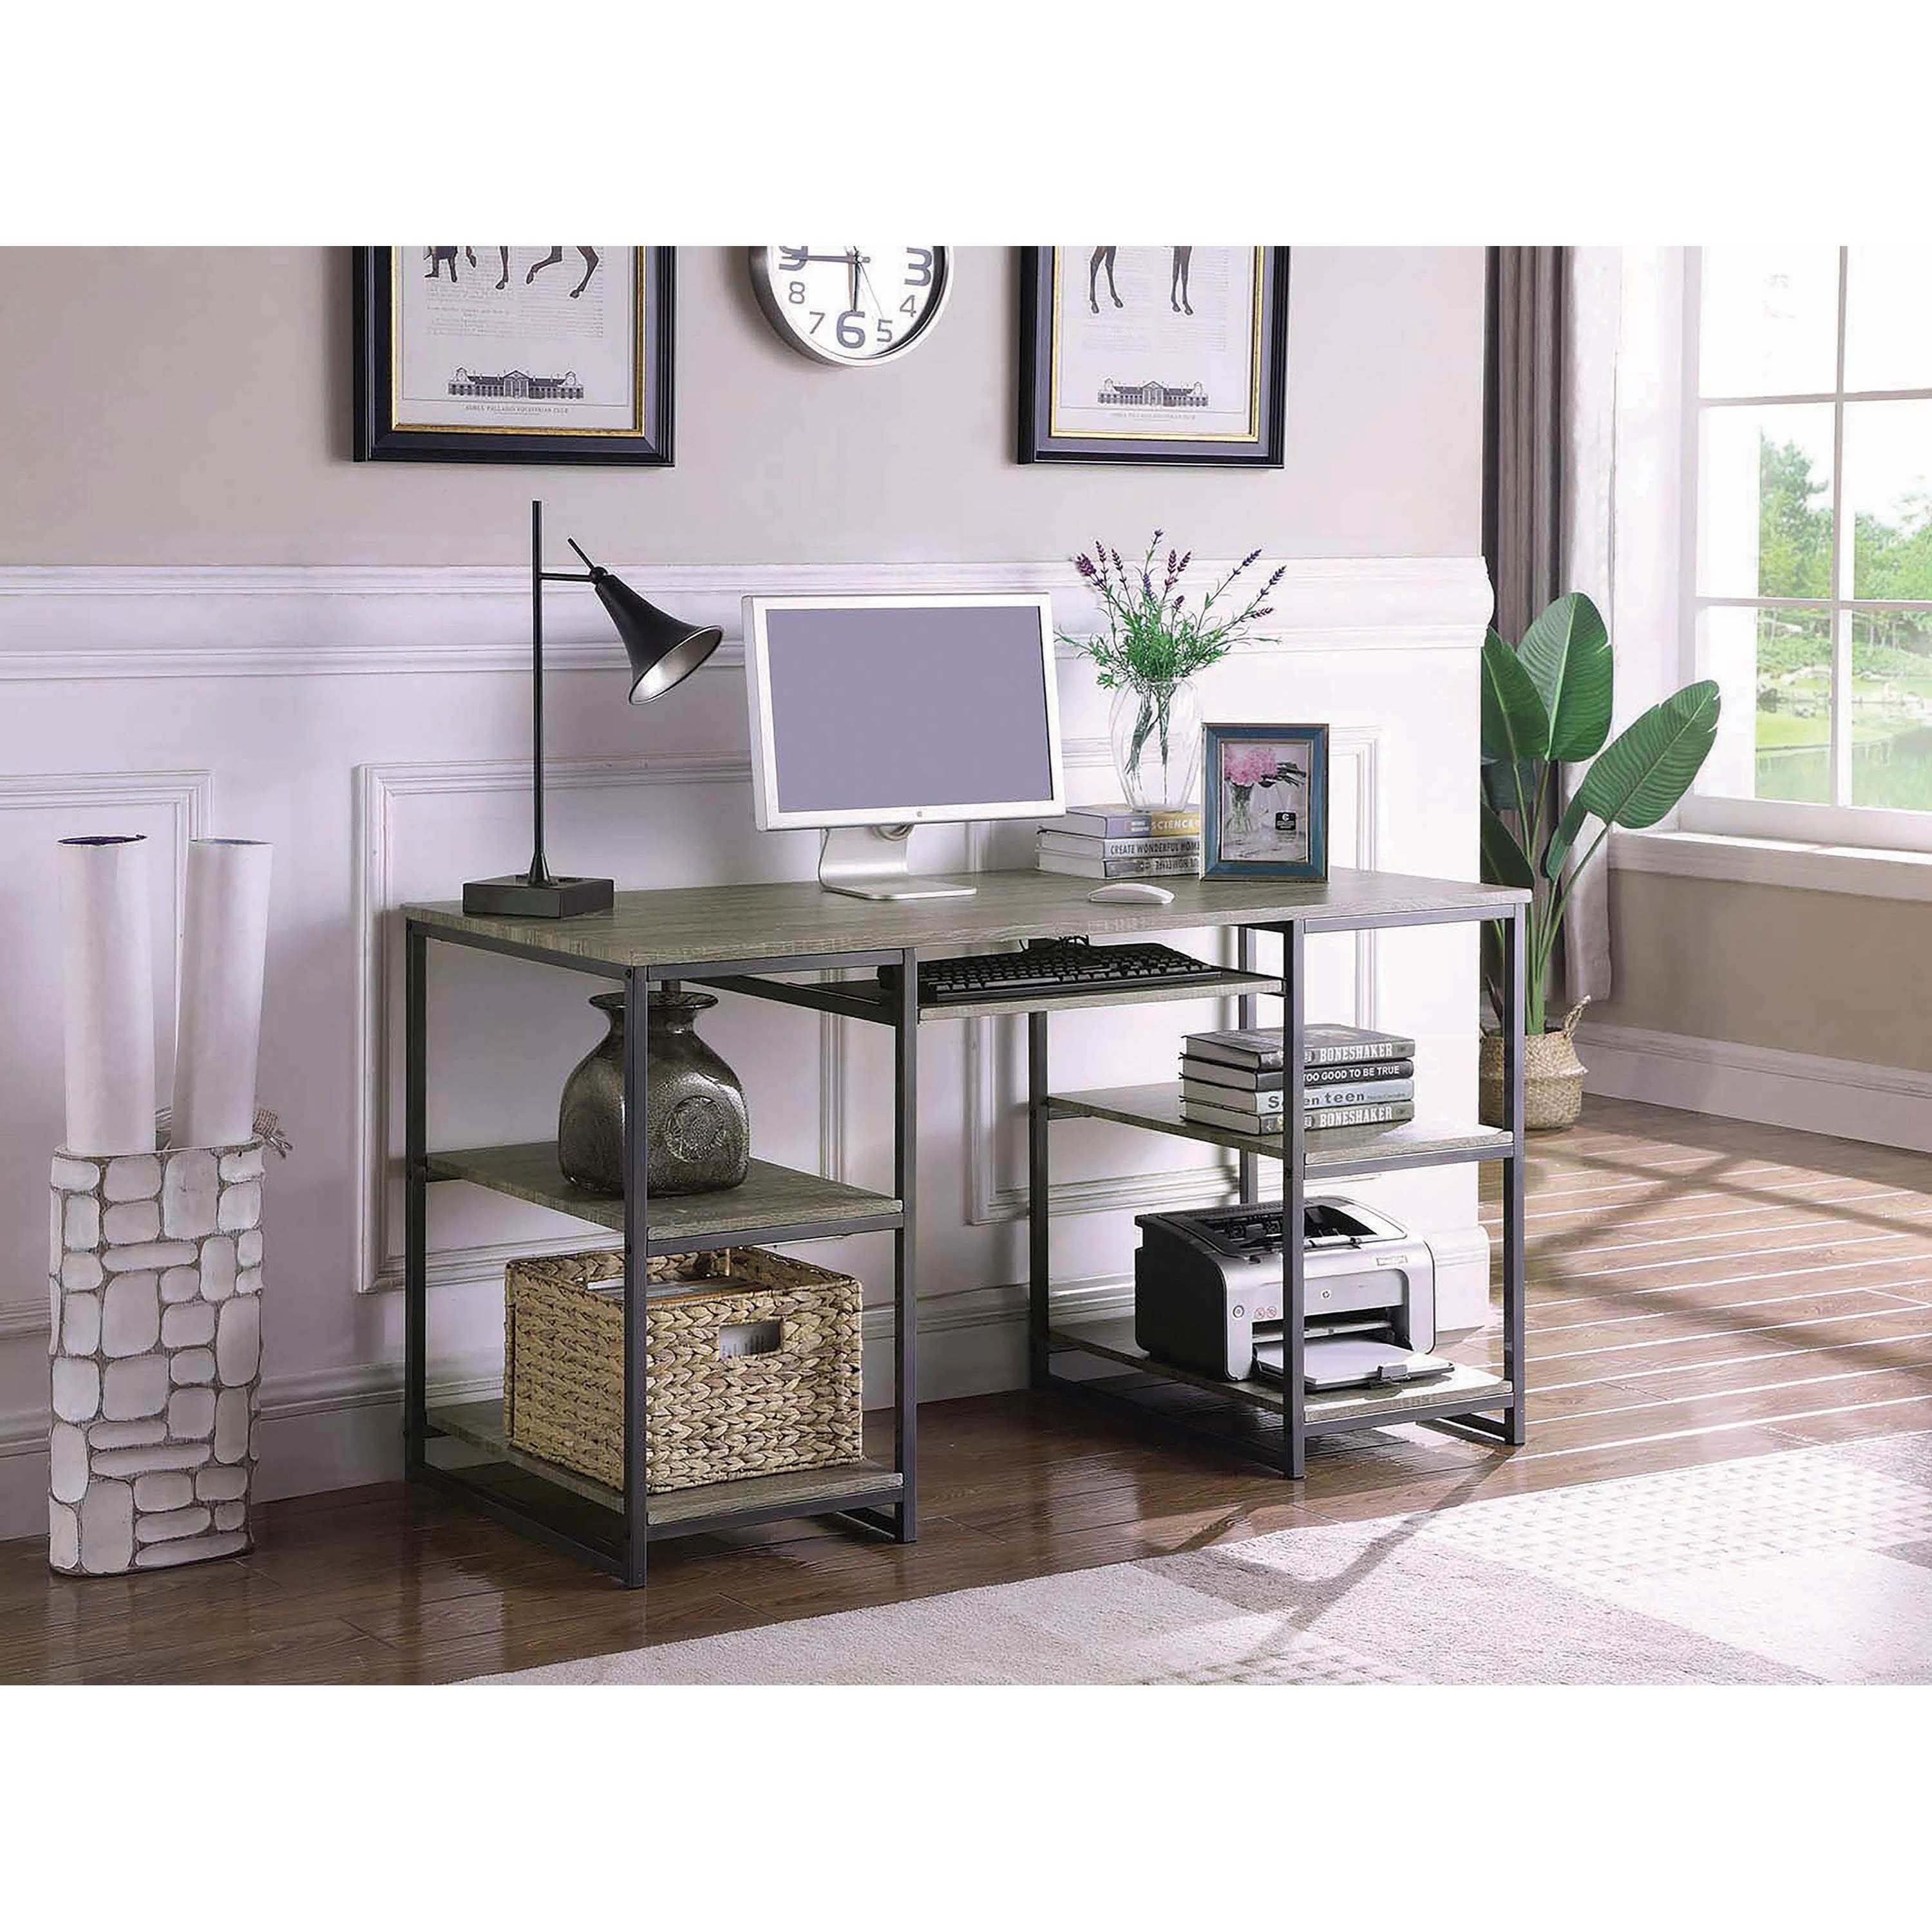 Coaster Contemporary Computer Desk with Open Shelving